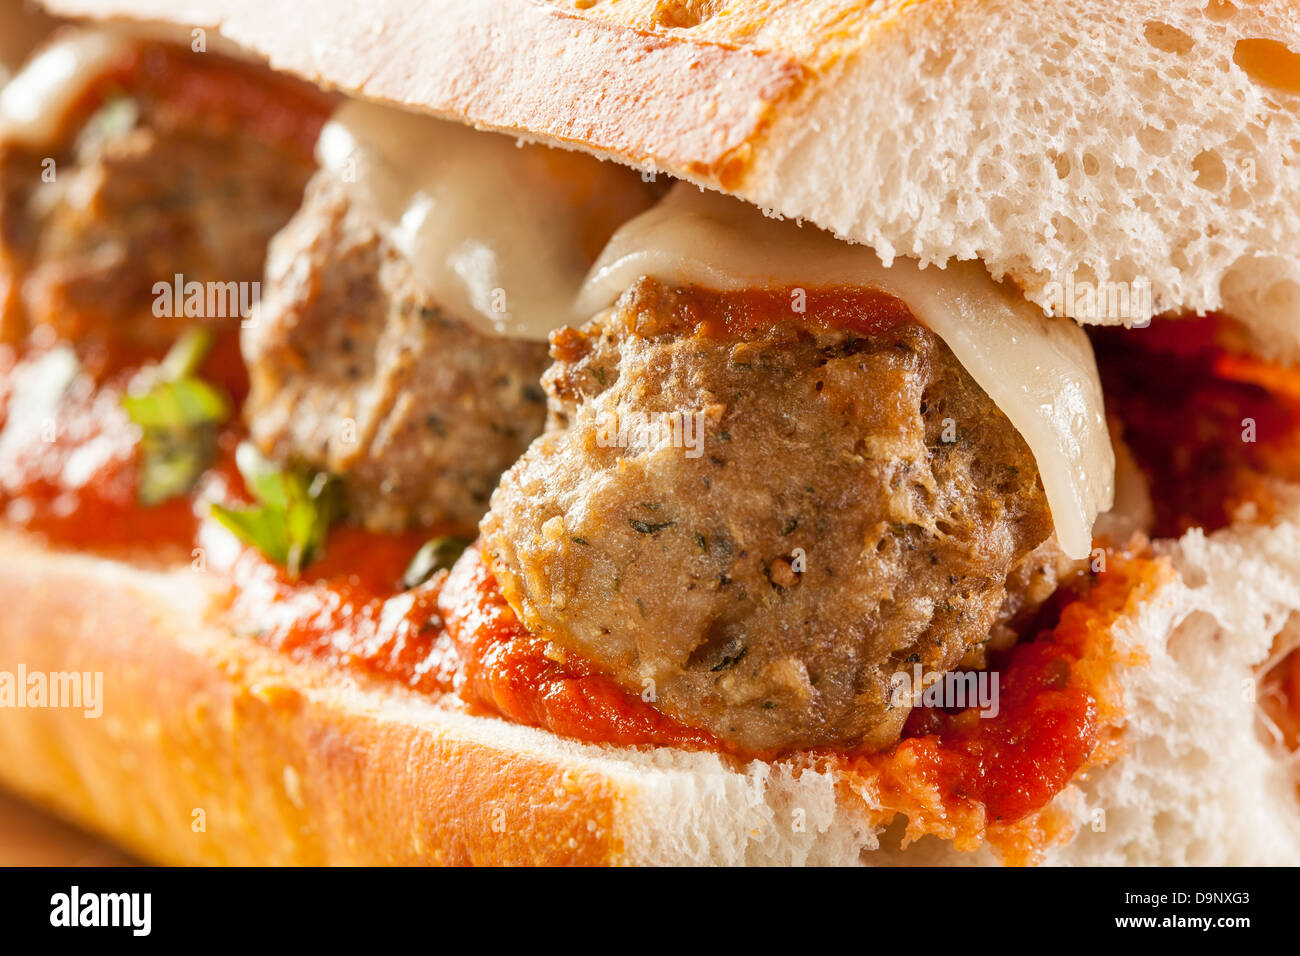 Homemade Spicy Meatball Sub Sandwich with Marinara Sauce and Cheese - Stock Image